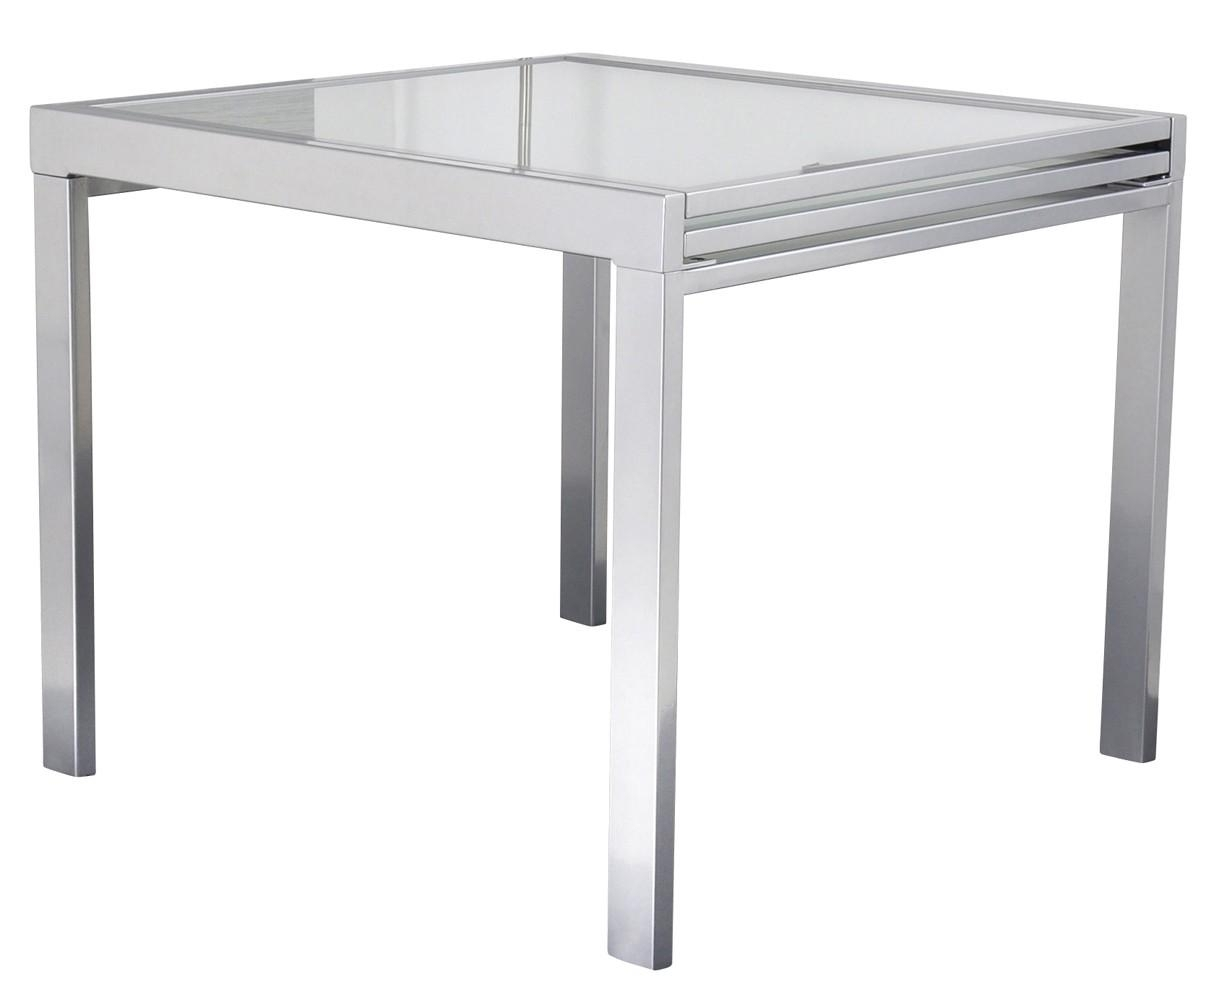 Les tendances table carr e extensible grise - Table carree en verre ...